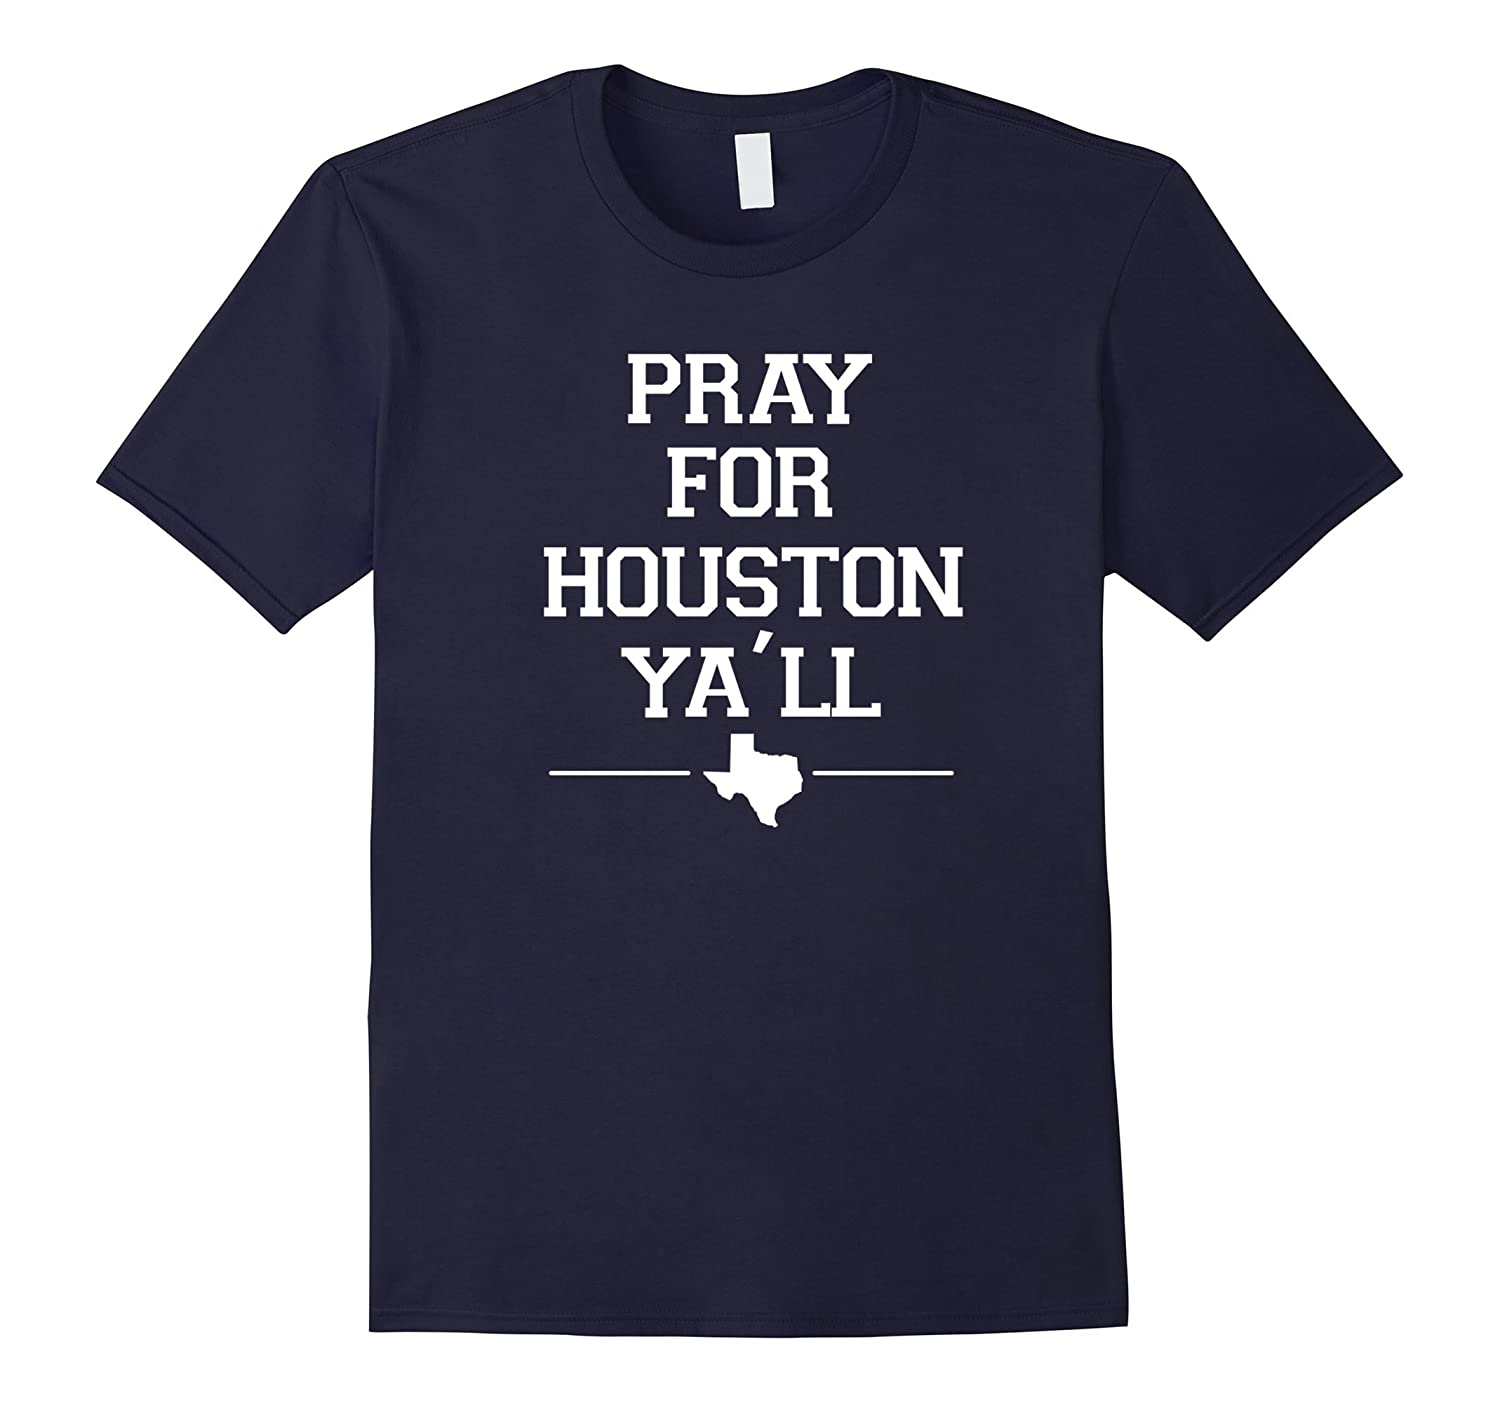 [PRAY FOR HOUSTON] Pray for Houston Ya'll T-Shirt-CL